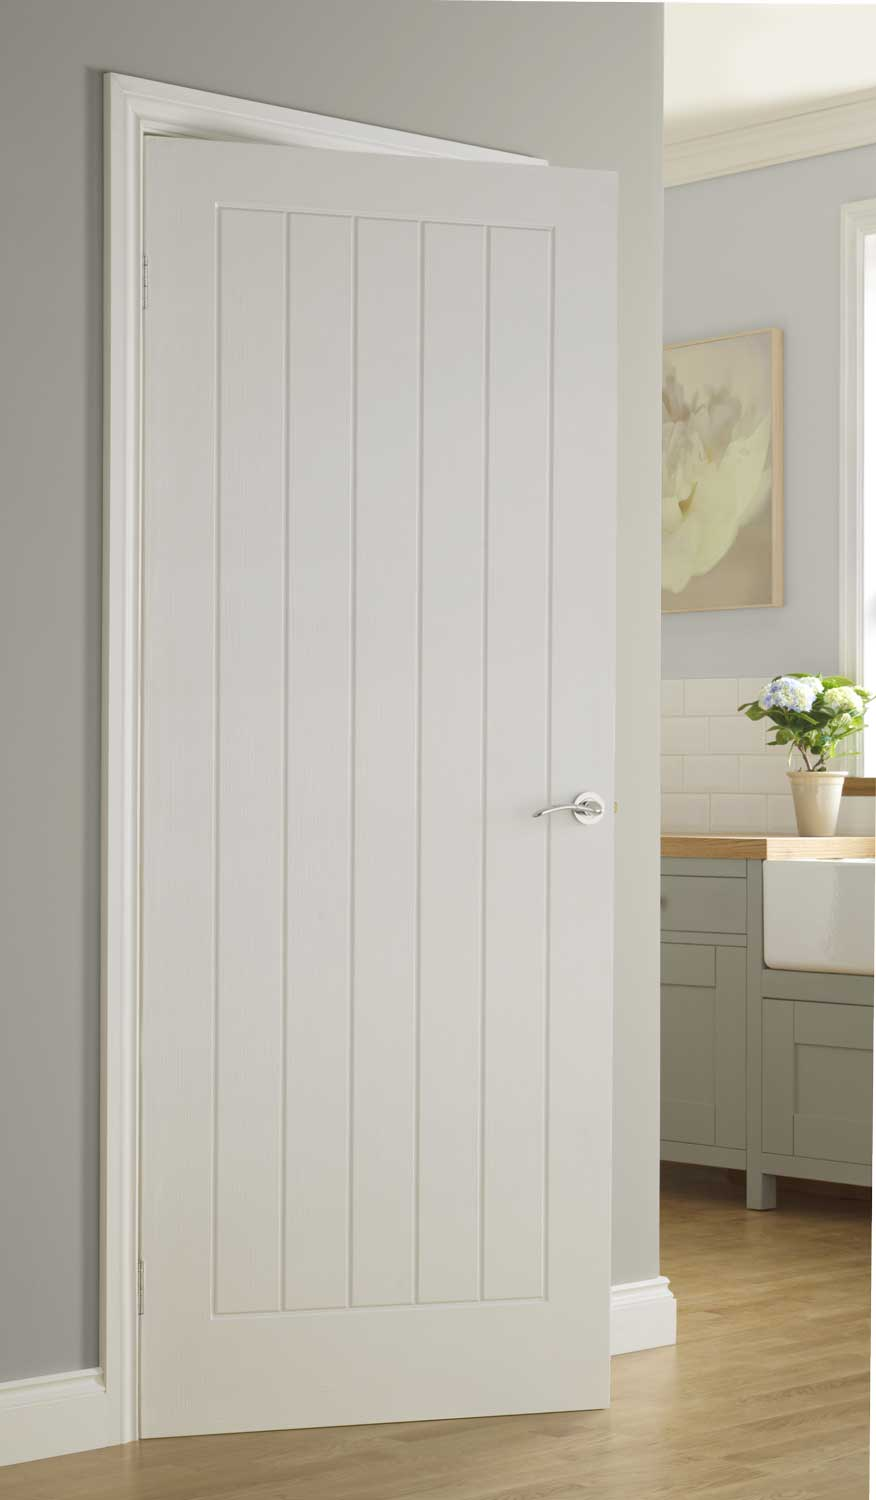 Vertical 5 Textured White Primed Door